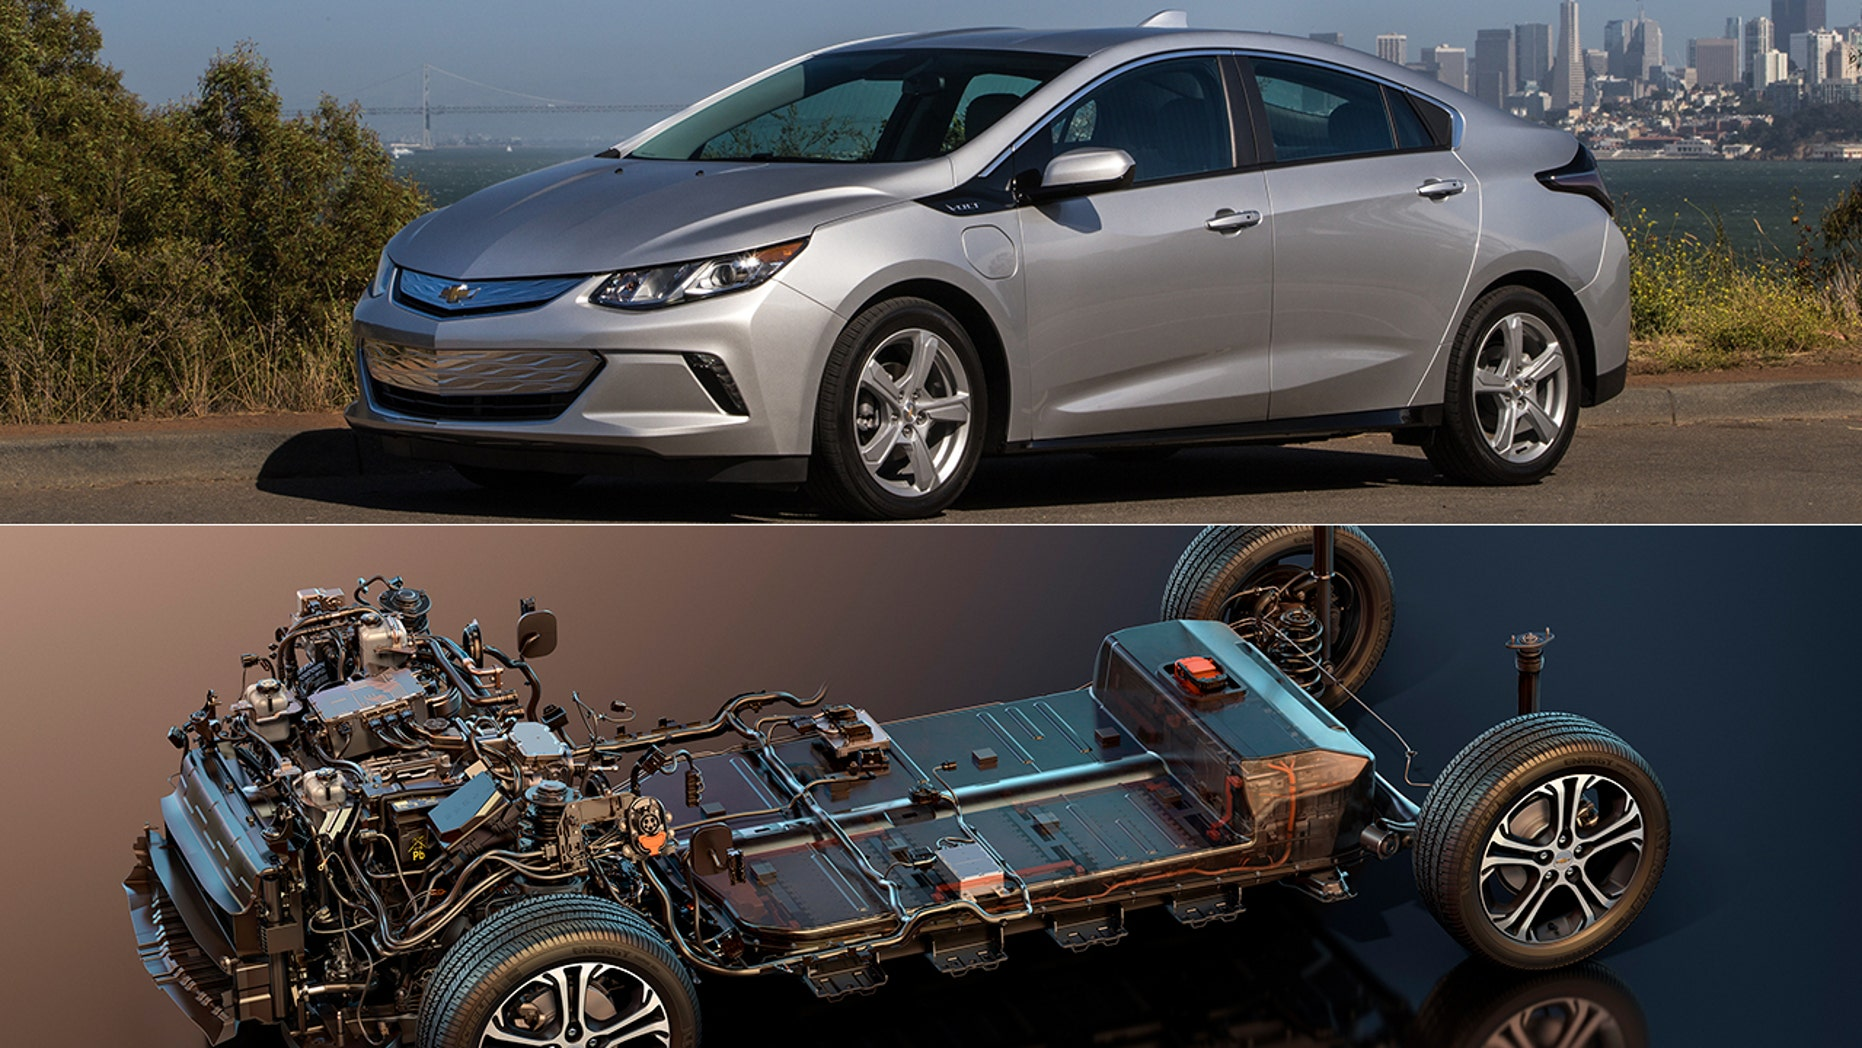 The Chevrolet Volt (top) is interrupted in favor of vehicles built on fully electric platforms such as the Chevrolet Bolt (below).